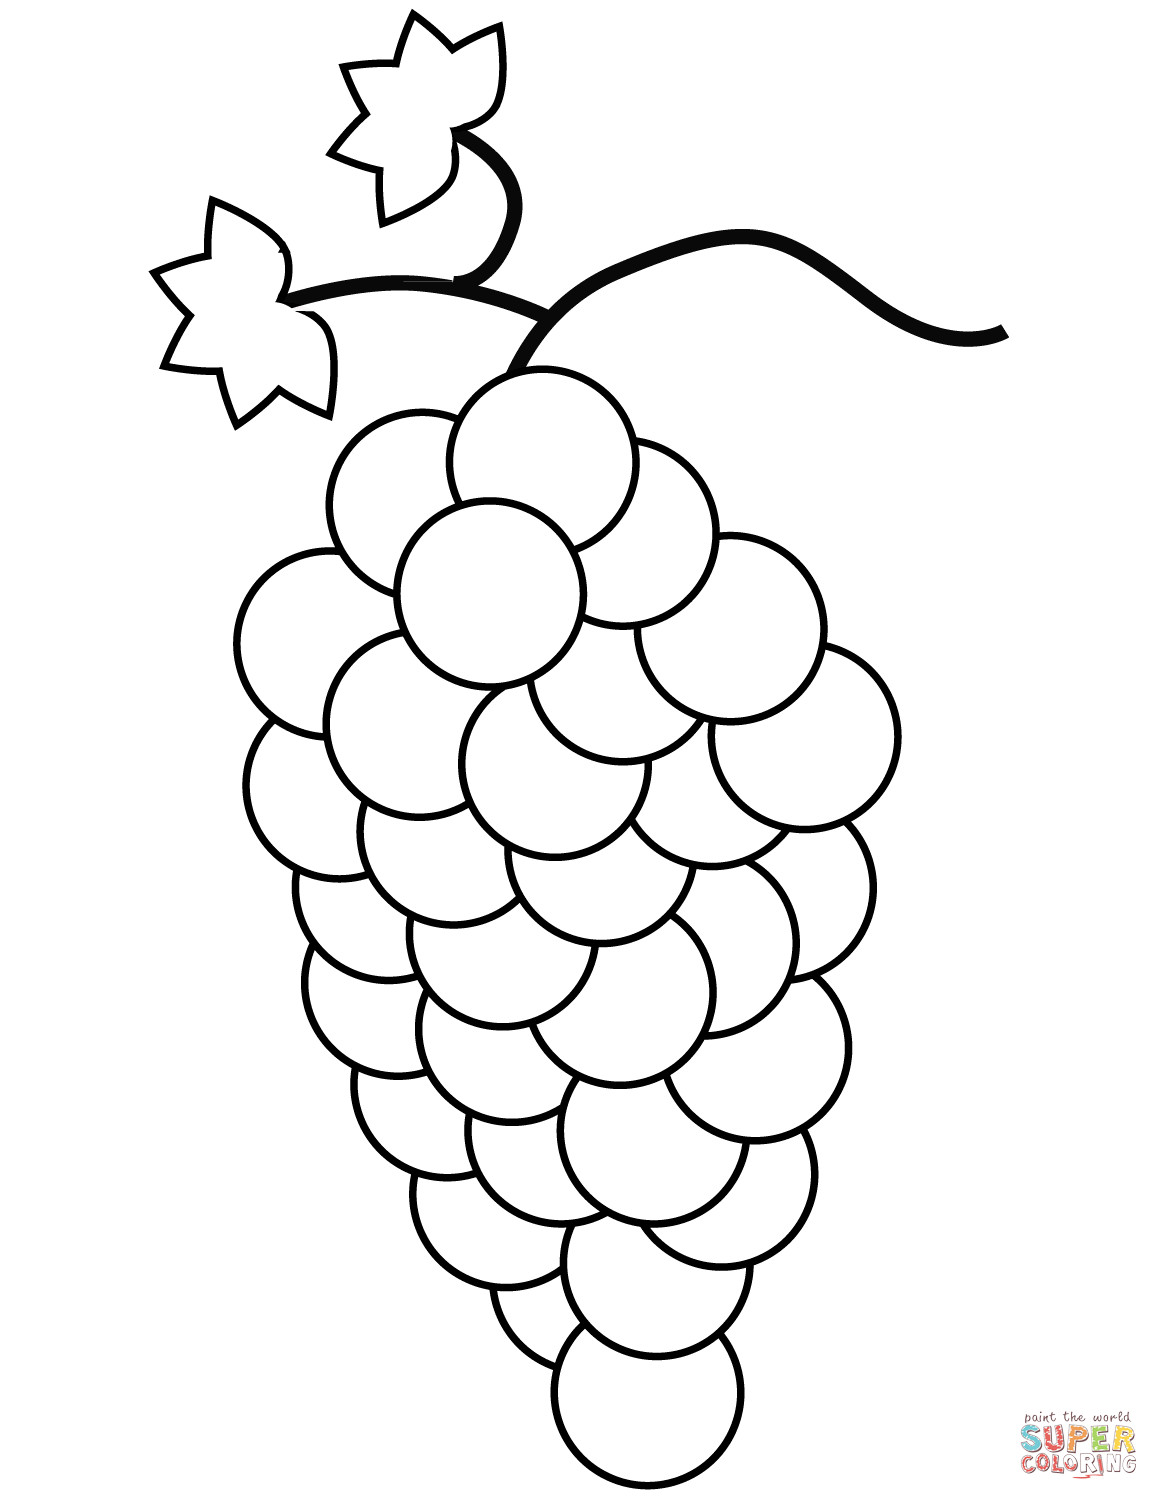 Grapes Coloring Pages  Grapes coloring page